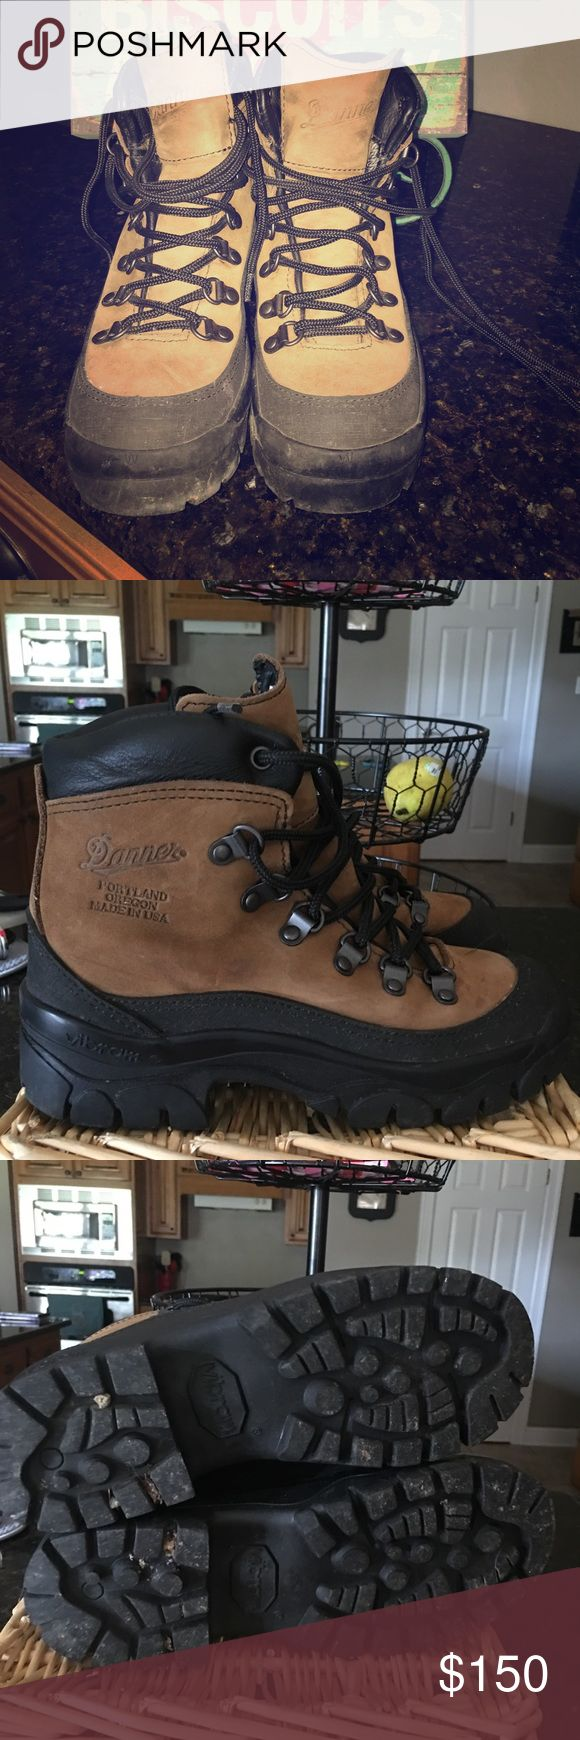 Danner hiking boots Danner Hiking Boots excellent condition worn once. Men size 4 women size 5.5-6 Danner Shoes Ankle Boots & Booties